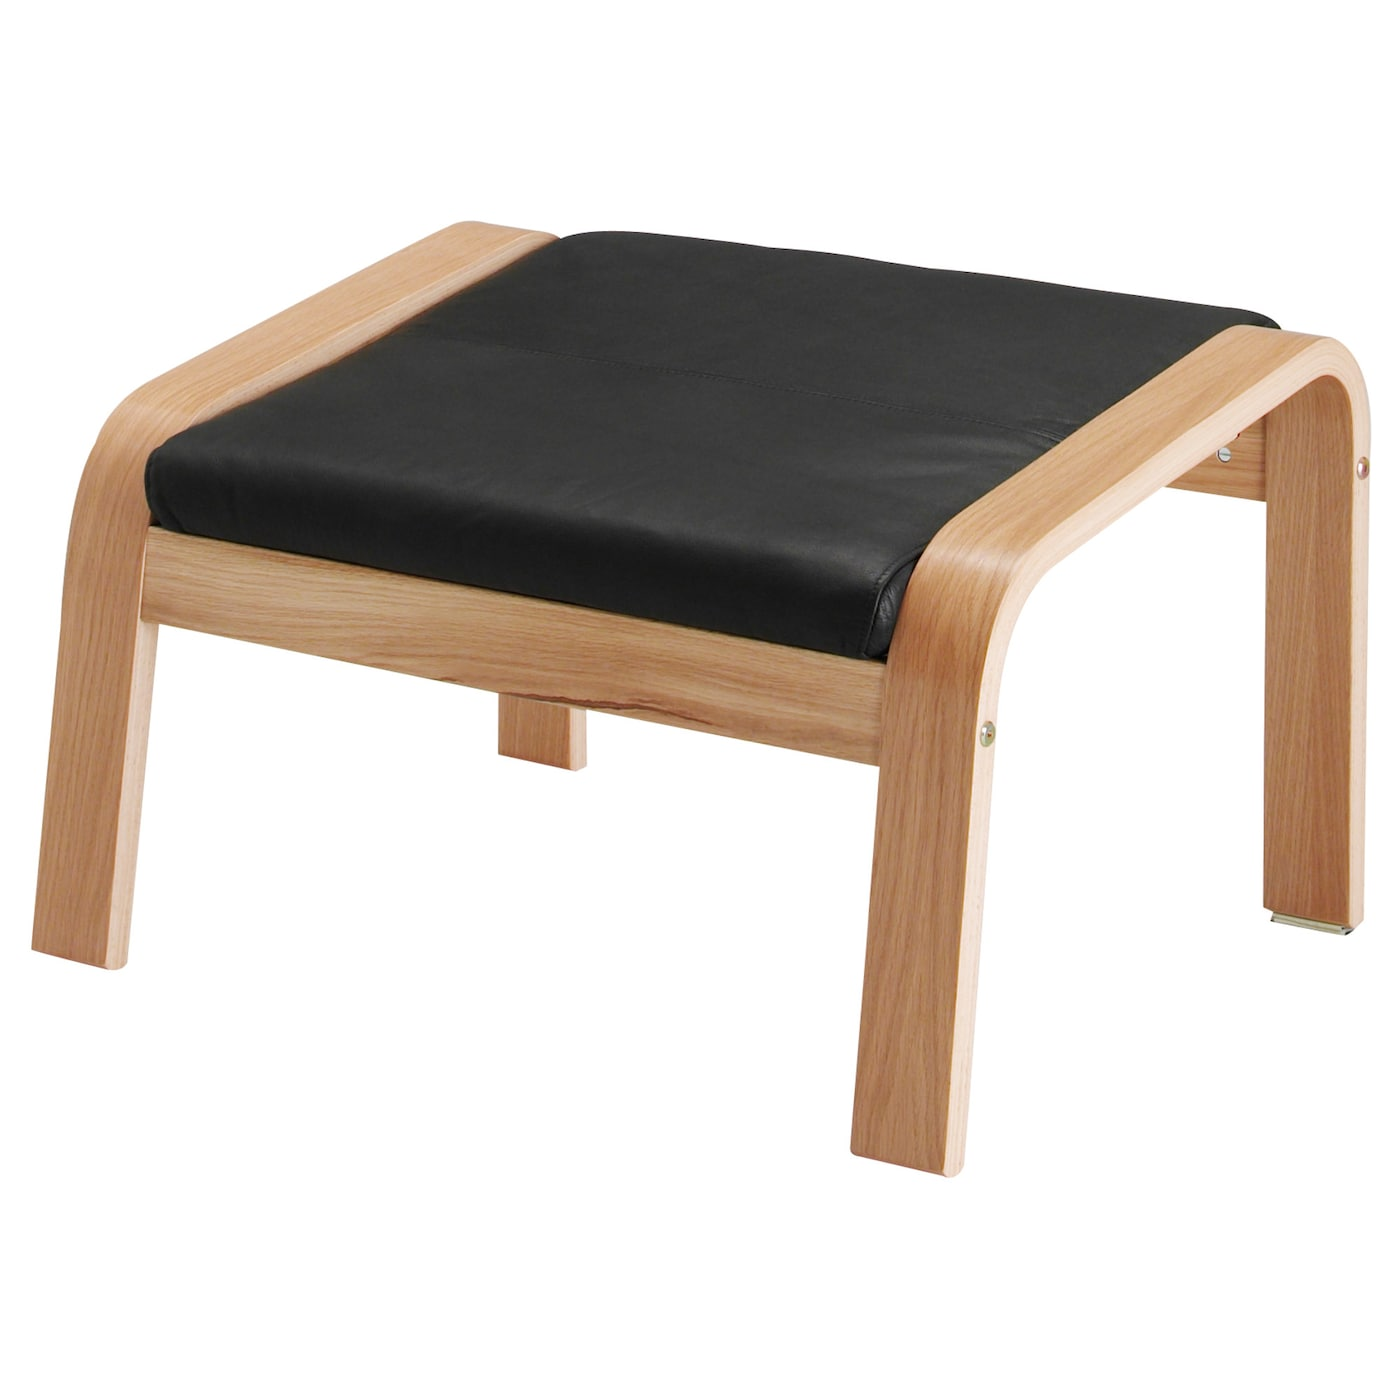 IKEA POÄNG footstool Soft hardwearing and easy care leather which ages gracefully.  sc 1 st  Ikea & POÄNG Footstool Oak veneer/smidig black - IKEA islam-shia.org